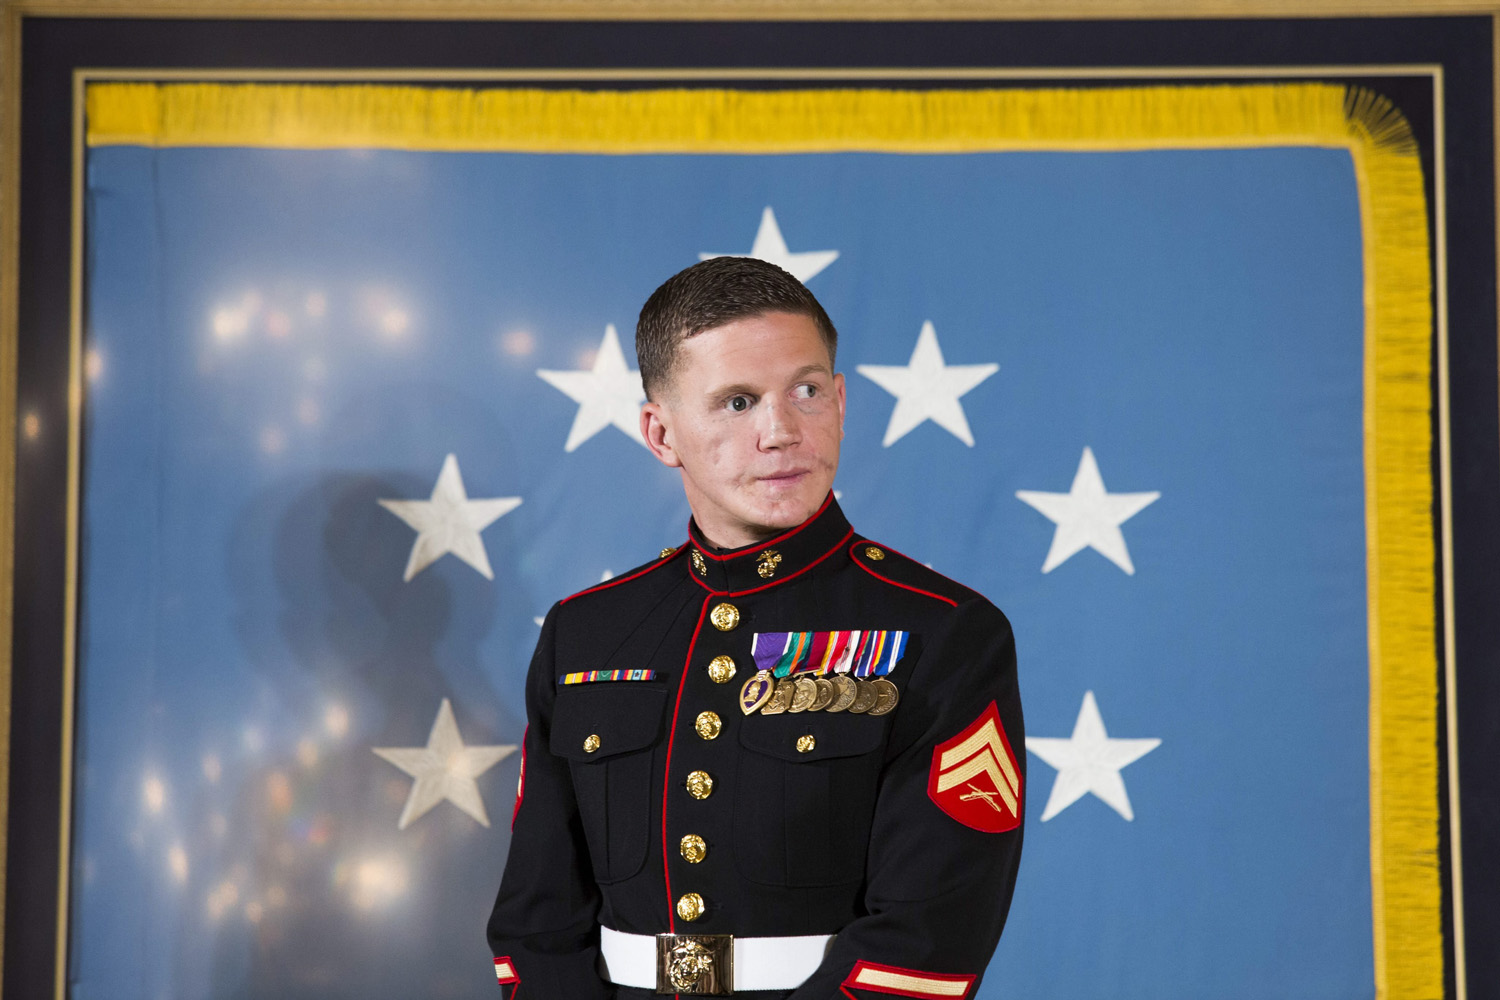 Jun. 19, 2014. US Marine Corps Corporal William  Kyle  Carpenter waits to be awarded the Medal of Honor by U.S. President Barack Obama, during a ceremony in the East Room of the White House, in Washington, DC.